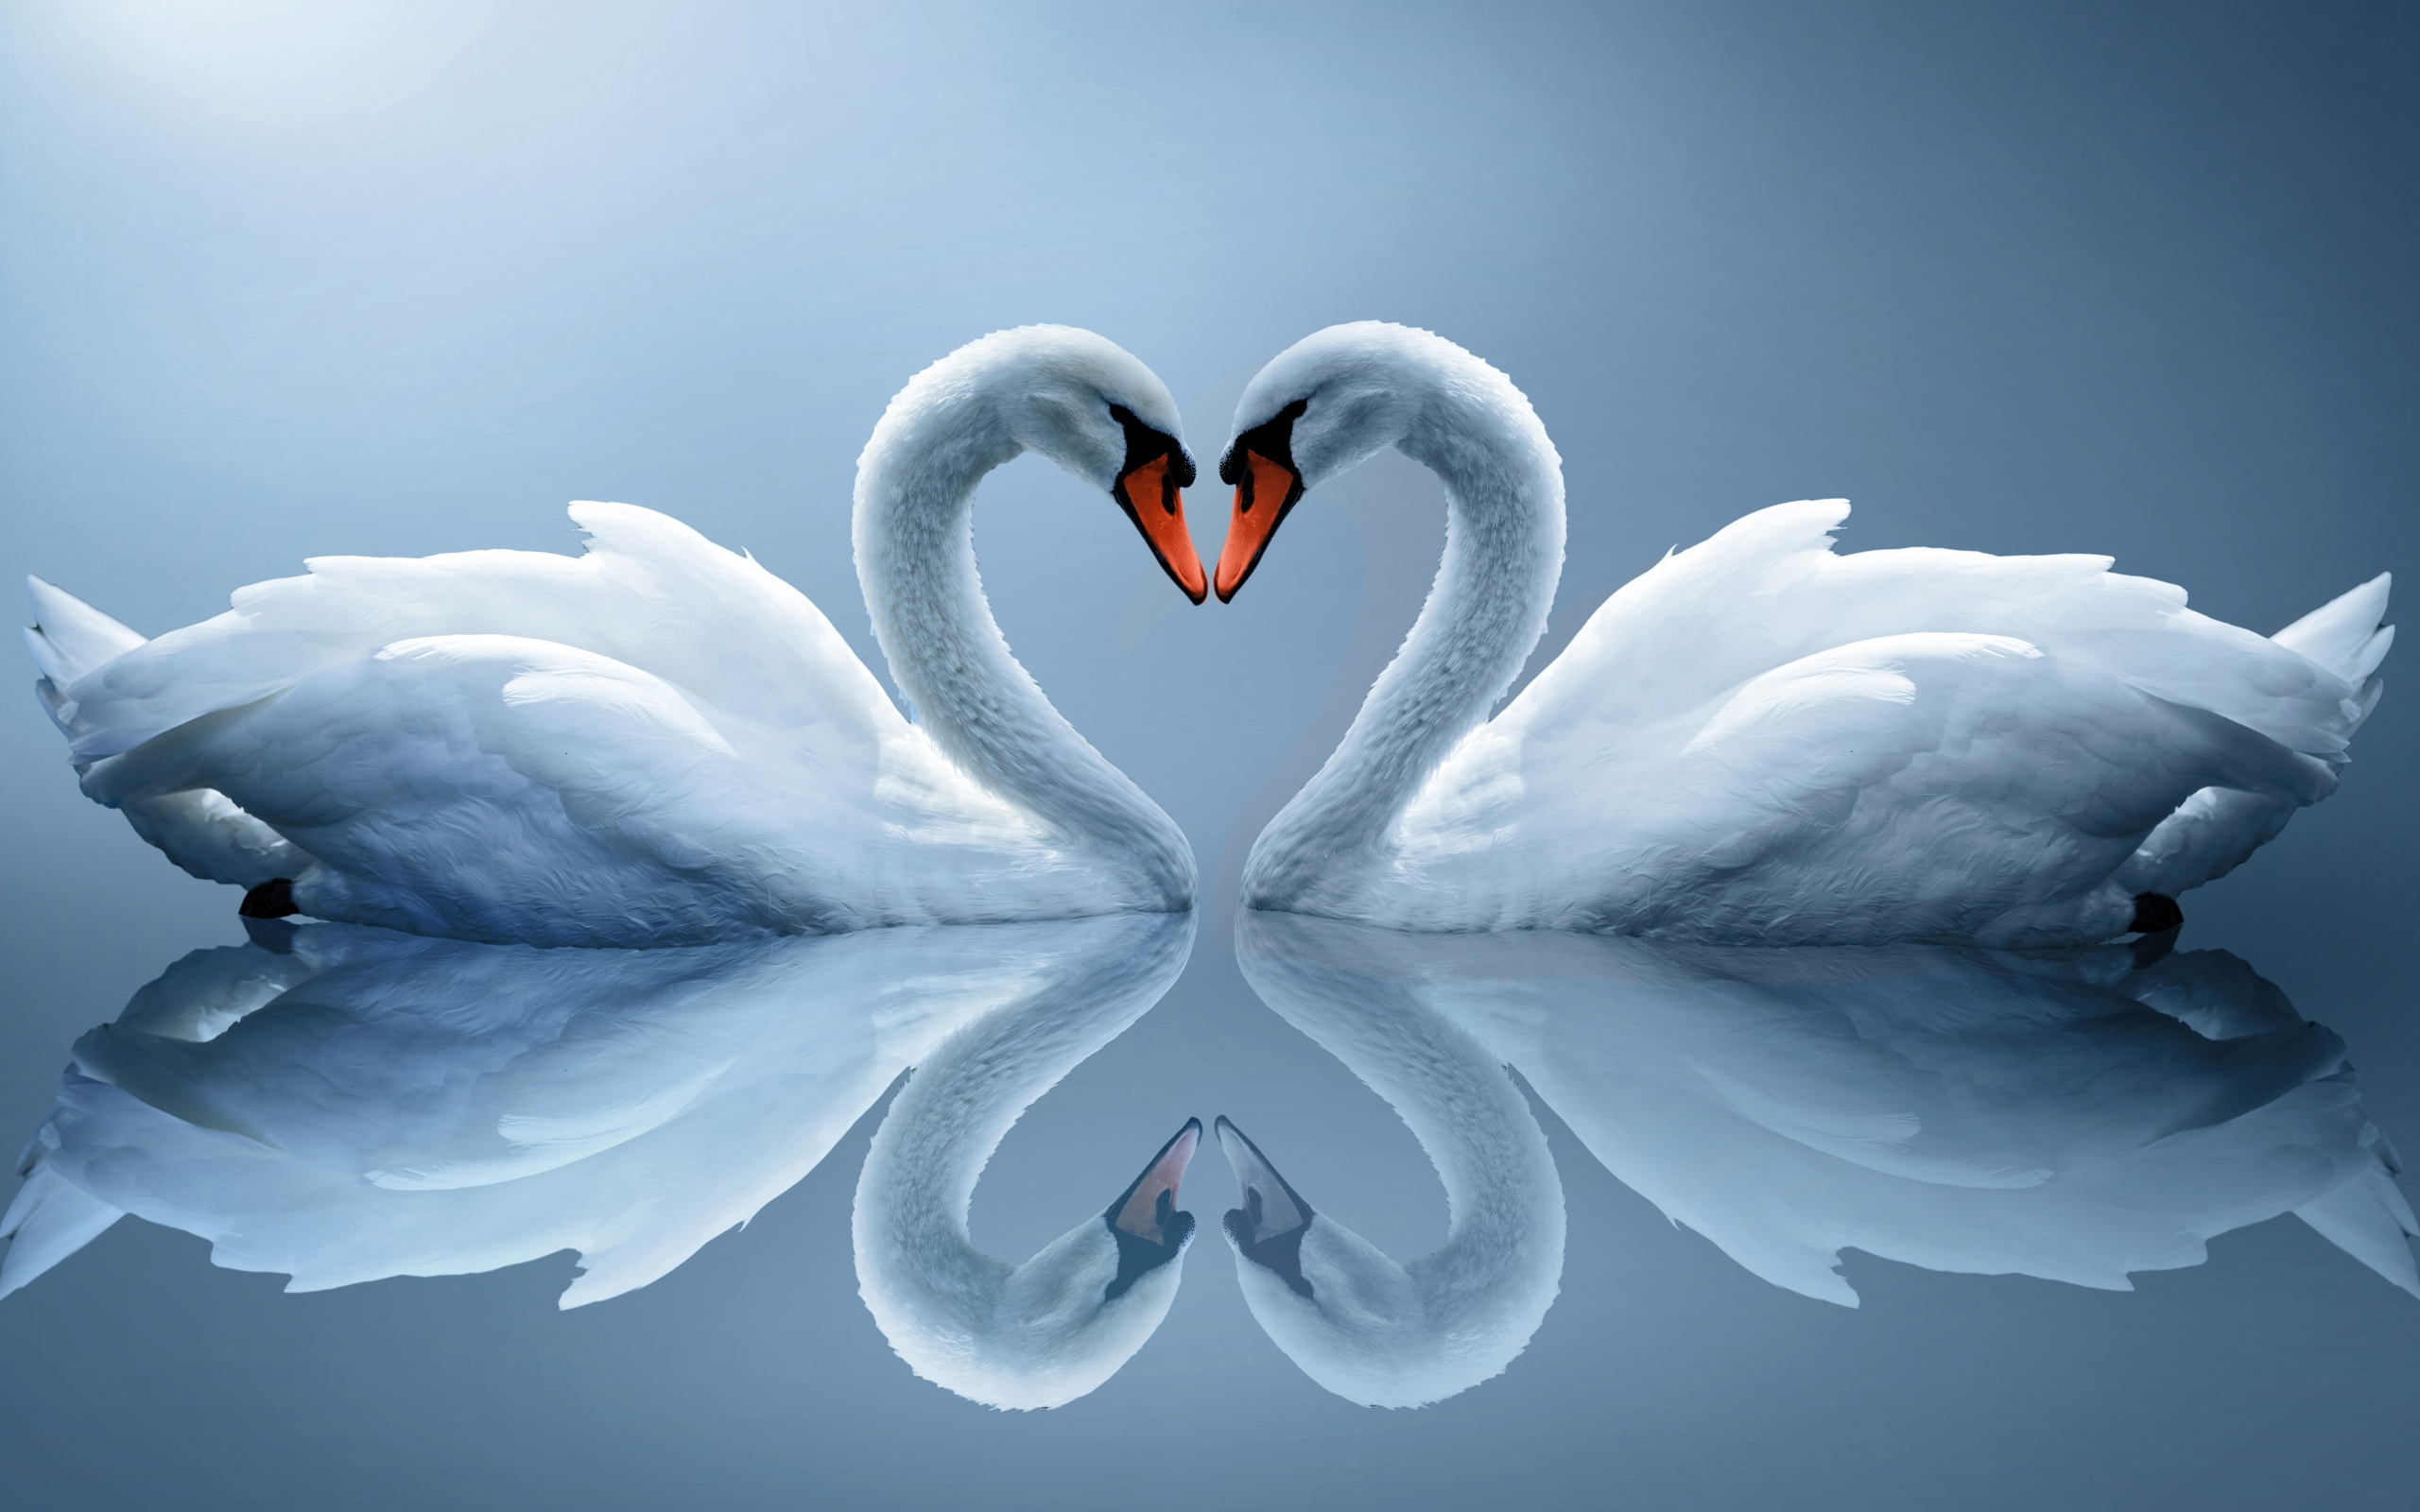 Images Of Love, Couple of Swans 299.86 Kb